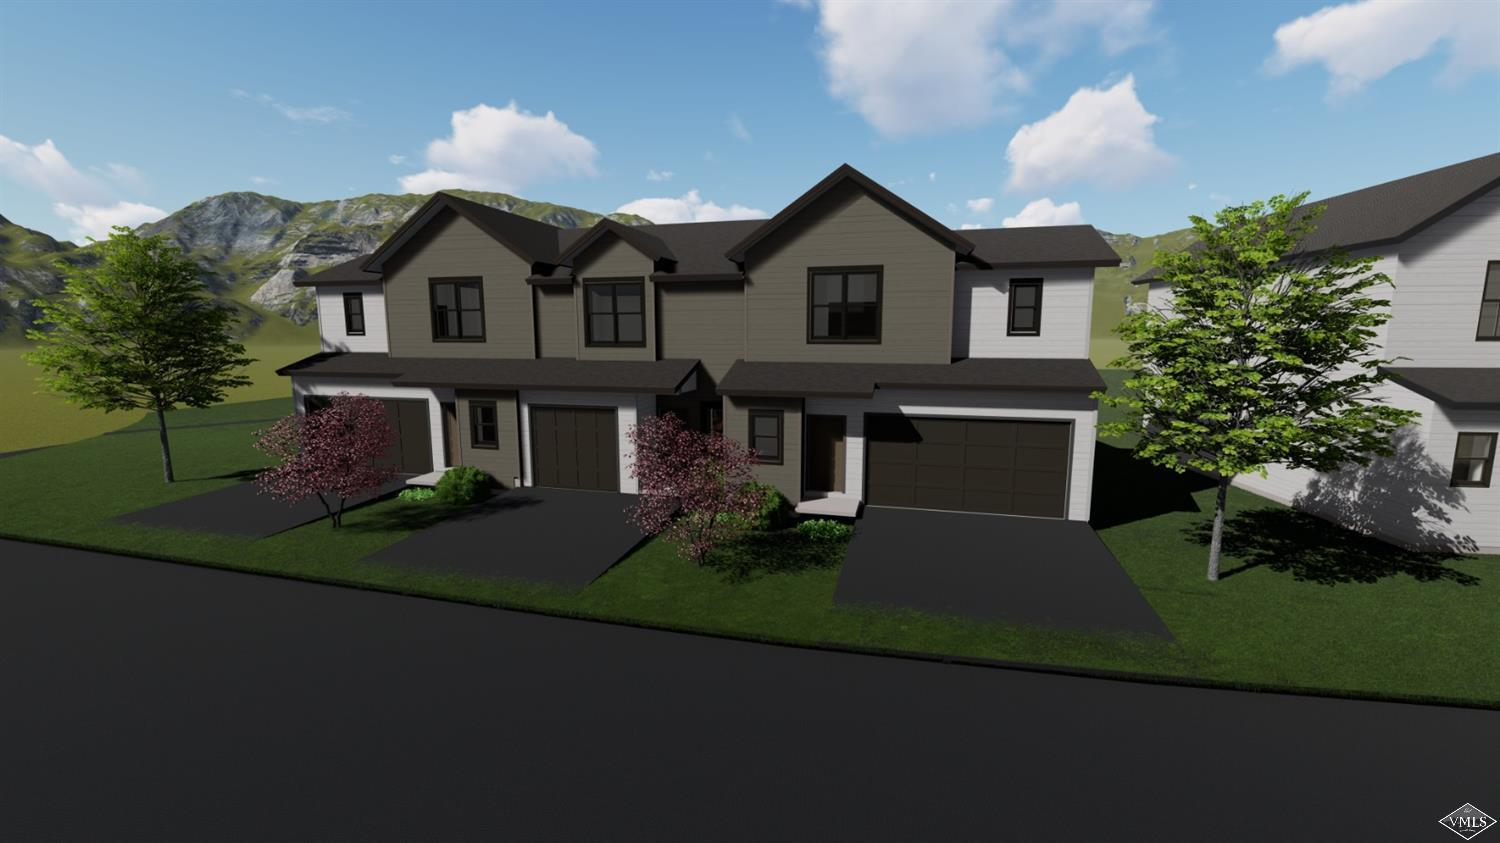 BRAND NEW TOWNHOME! Now Under Construction! Well-designed, site-built, 3 bedroom, 2.5 bath home with an attached 2-car garage. Incredibly convenient location close to Costco, Gypsum Rec Ctr, and Eagle County Airport. Only minutes to world-class recreation of all types. Standard finishes include vaulted ceilings, LVT flooring, laminate countertops, kitchen pantry, & Whirlpool appliances. Upgrades are available as well! Laundry room conveniently located on the bedroom level. This is an end unit & offers plenty of light.